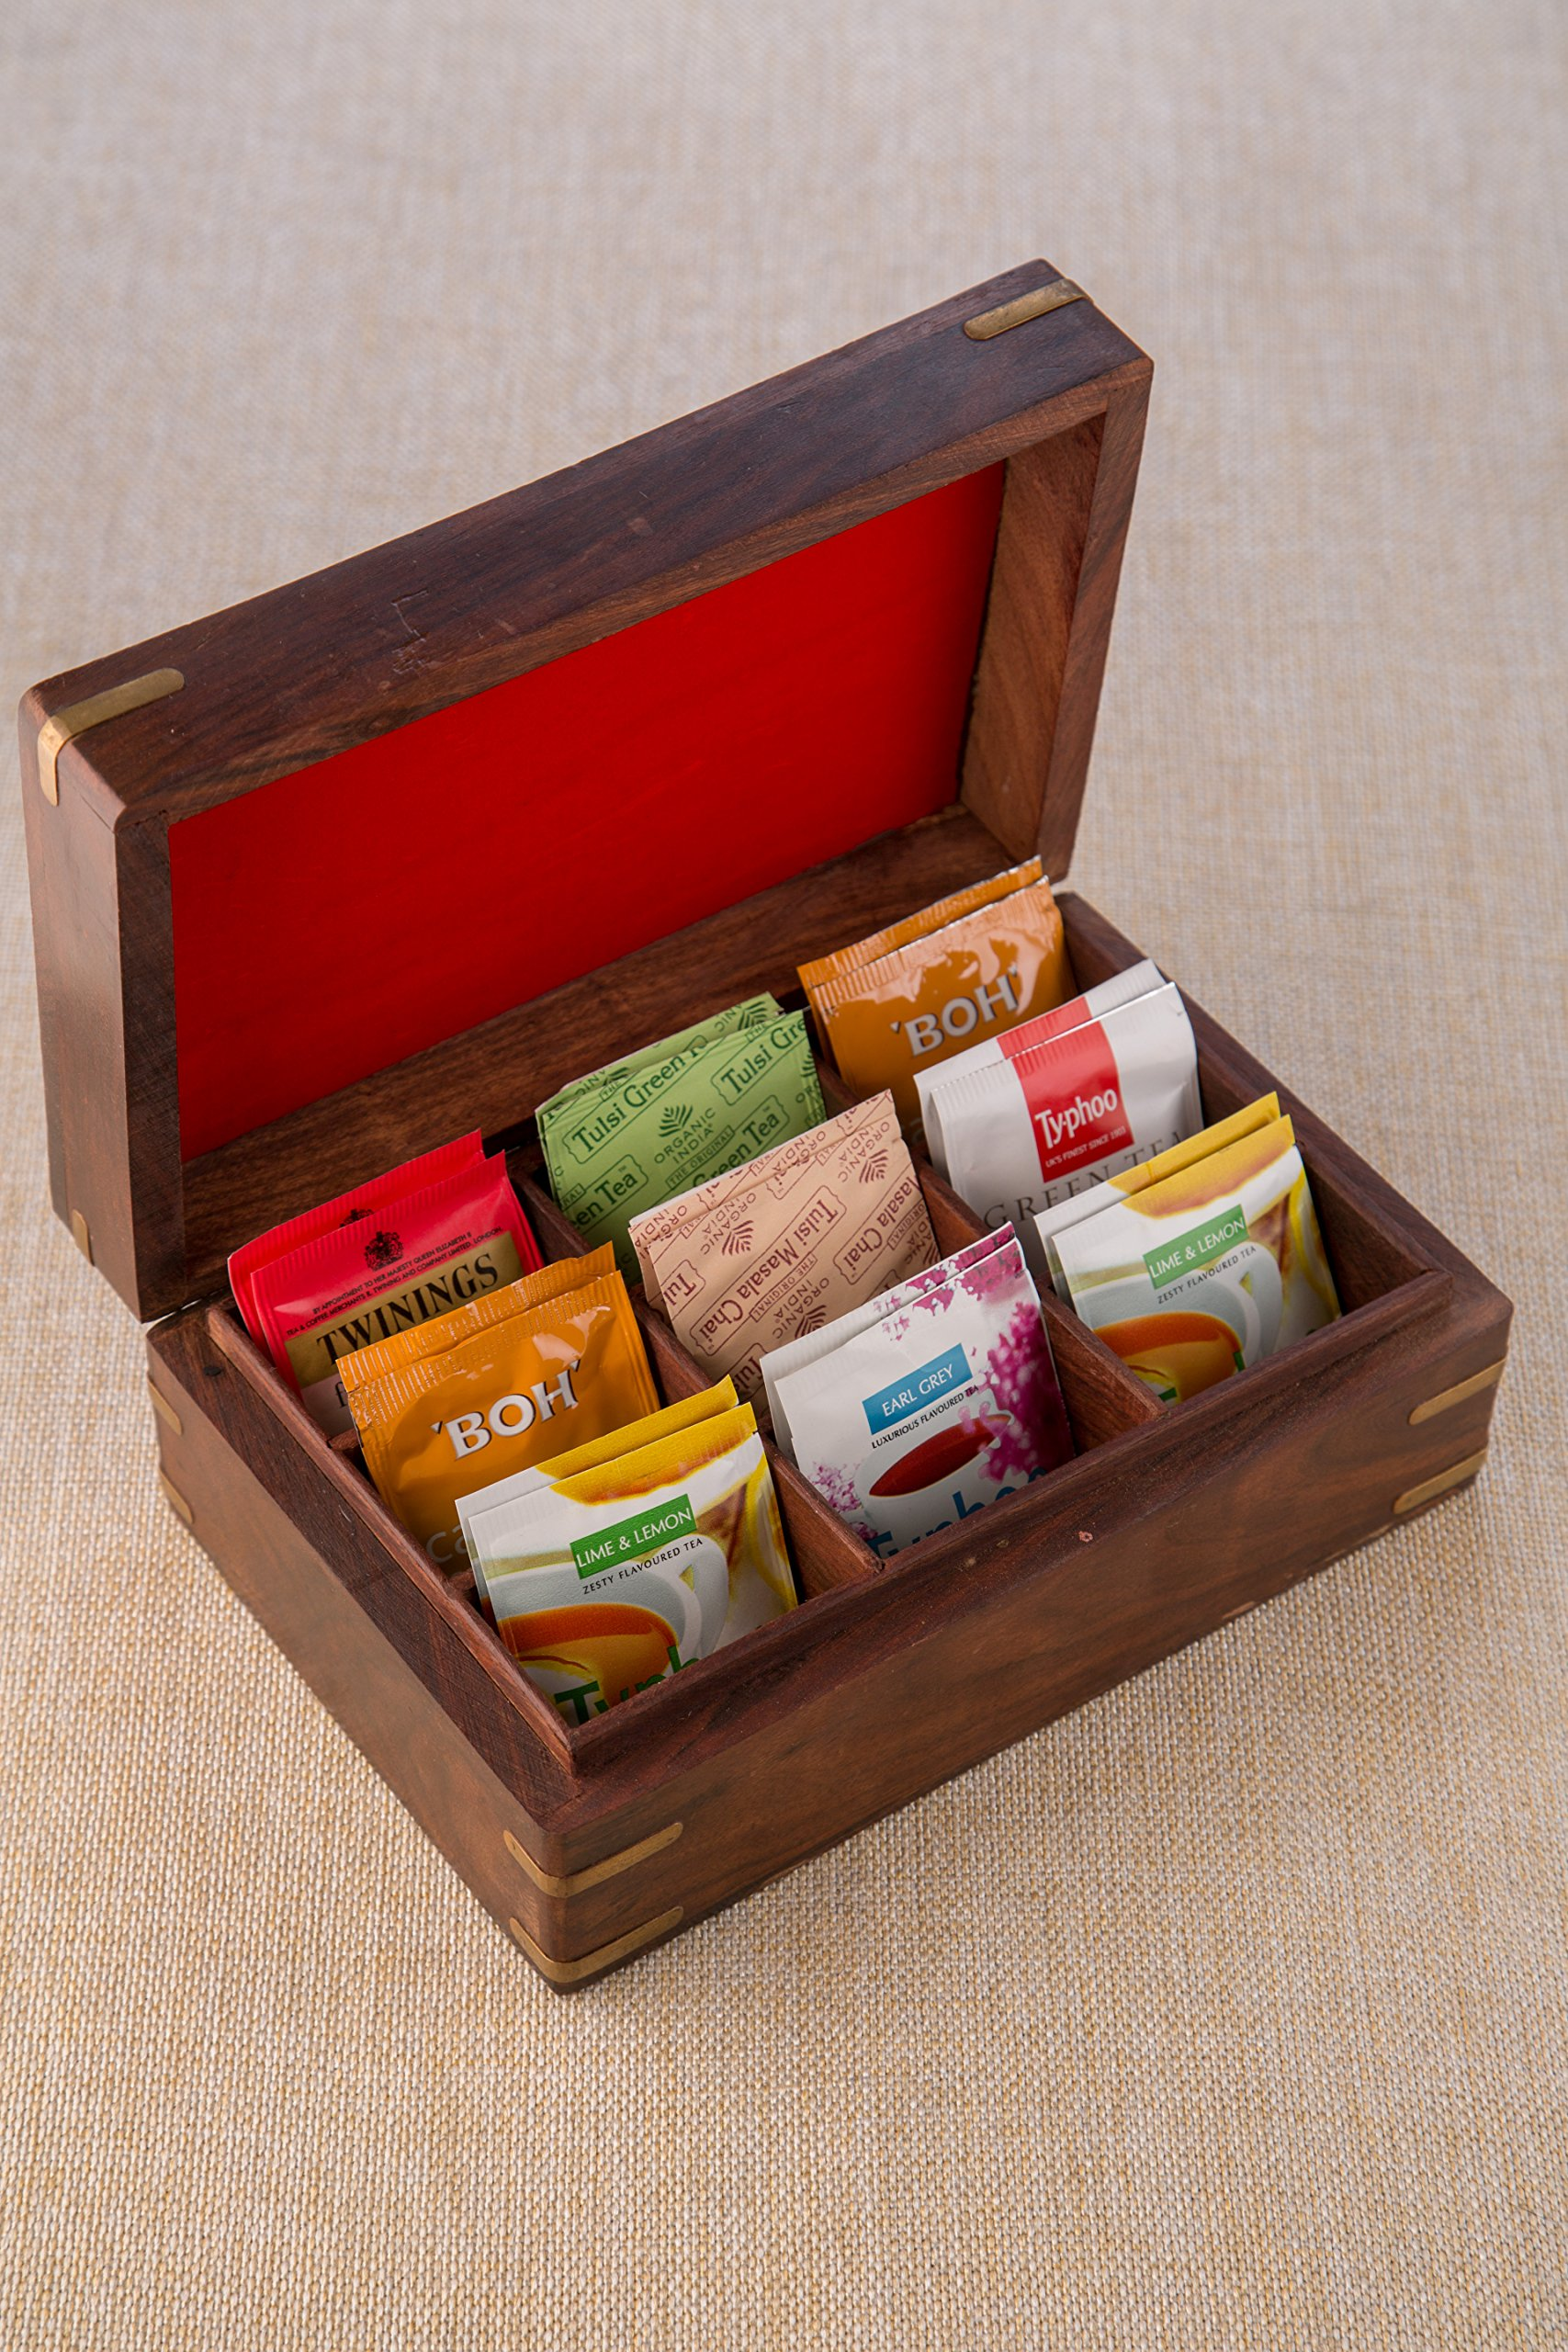 Rusticity Indian Rosewood Antique Treasure Storage Chest Box for Condiment Spice&Jewellery/Vintage Rustic Keepsake Trinket Organizer w/9 Compartments/Handmade Decorative Sheesham Wood Caddy Tea Bag by Rusticity (Image #7)